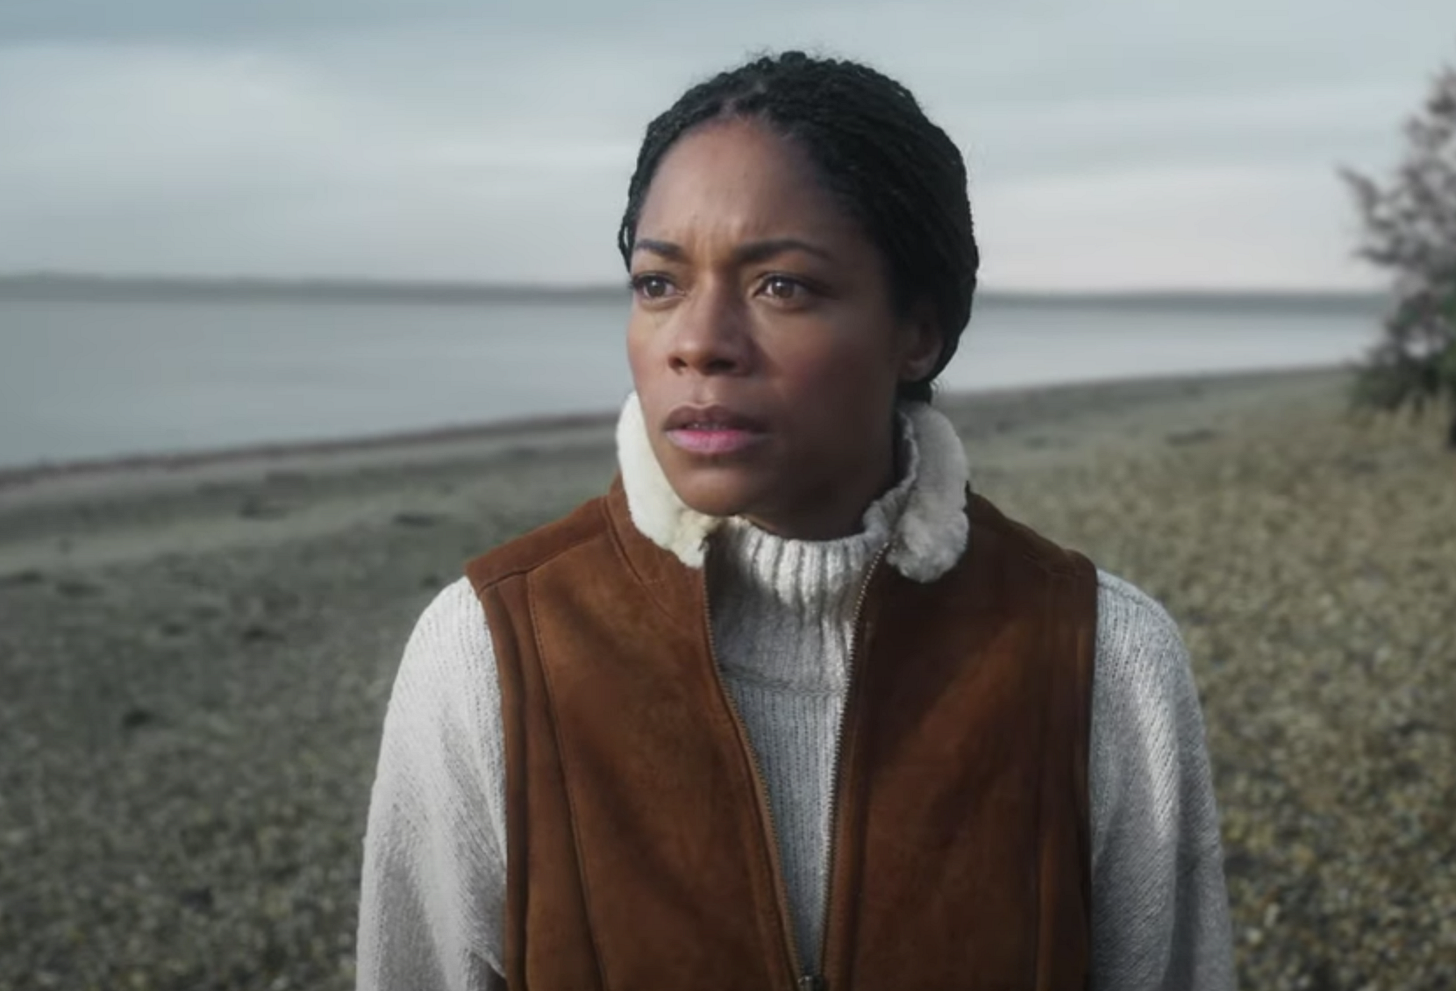 The Third Day Trailer: Jude Law, Naomie Harris Share an Island on HBO |  Collider